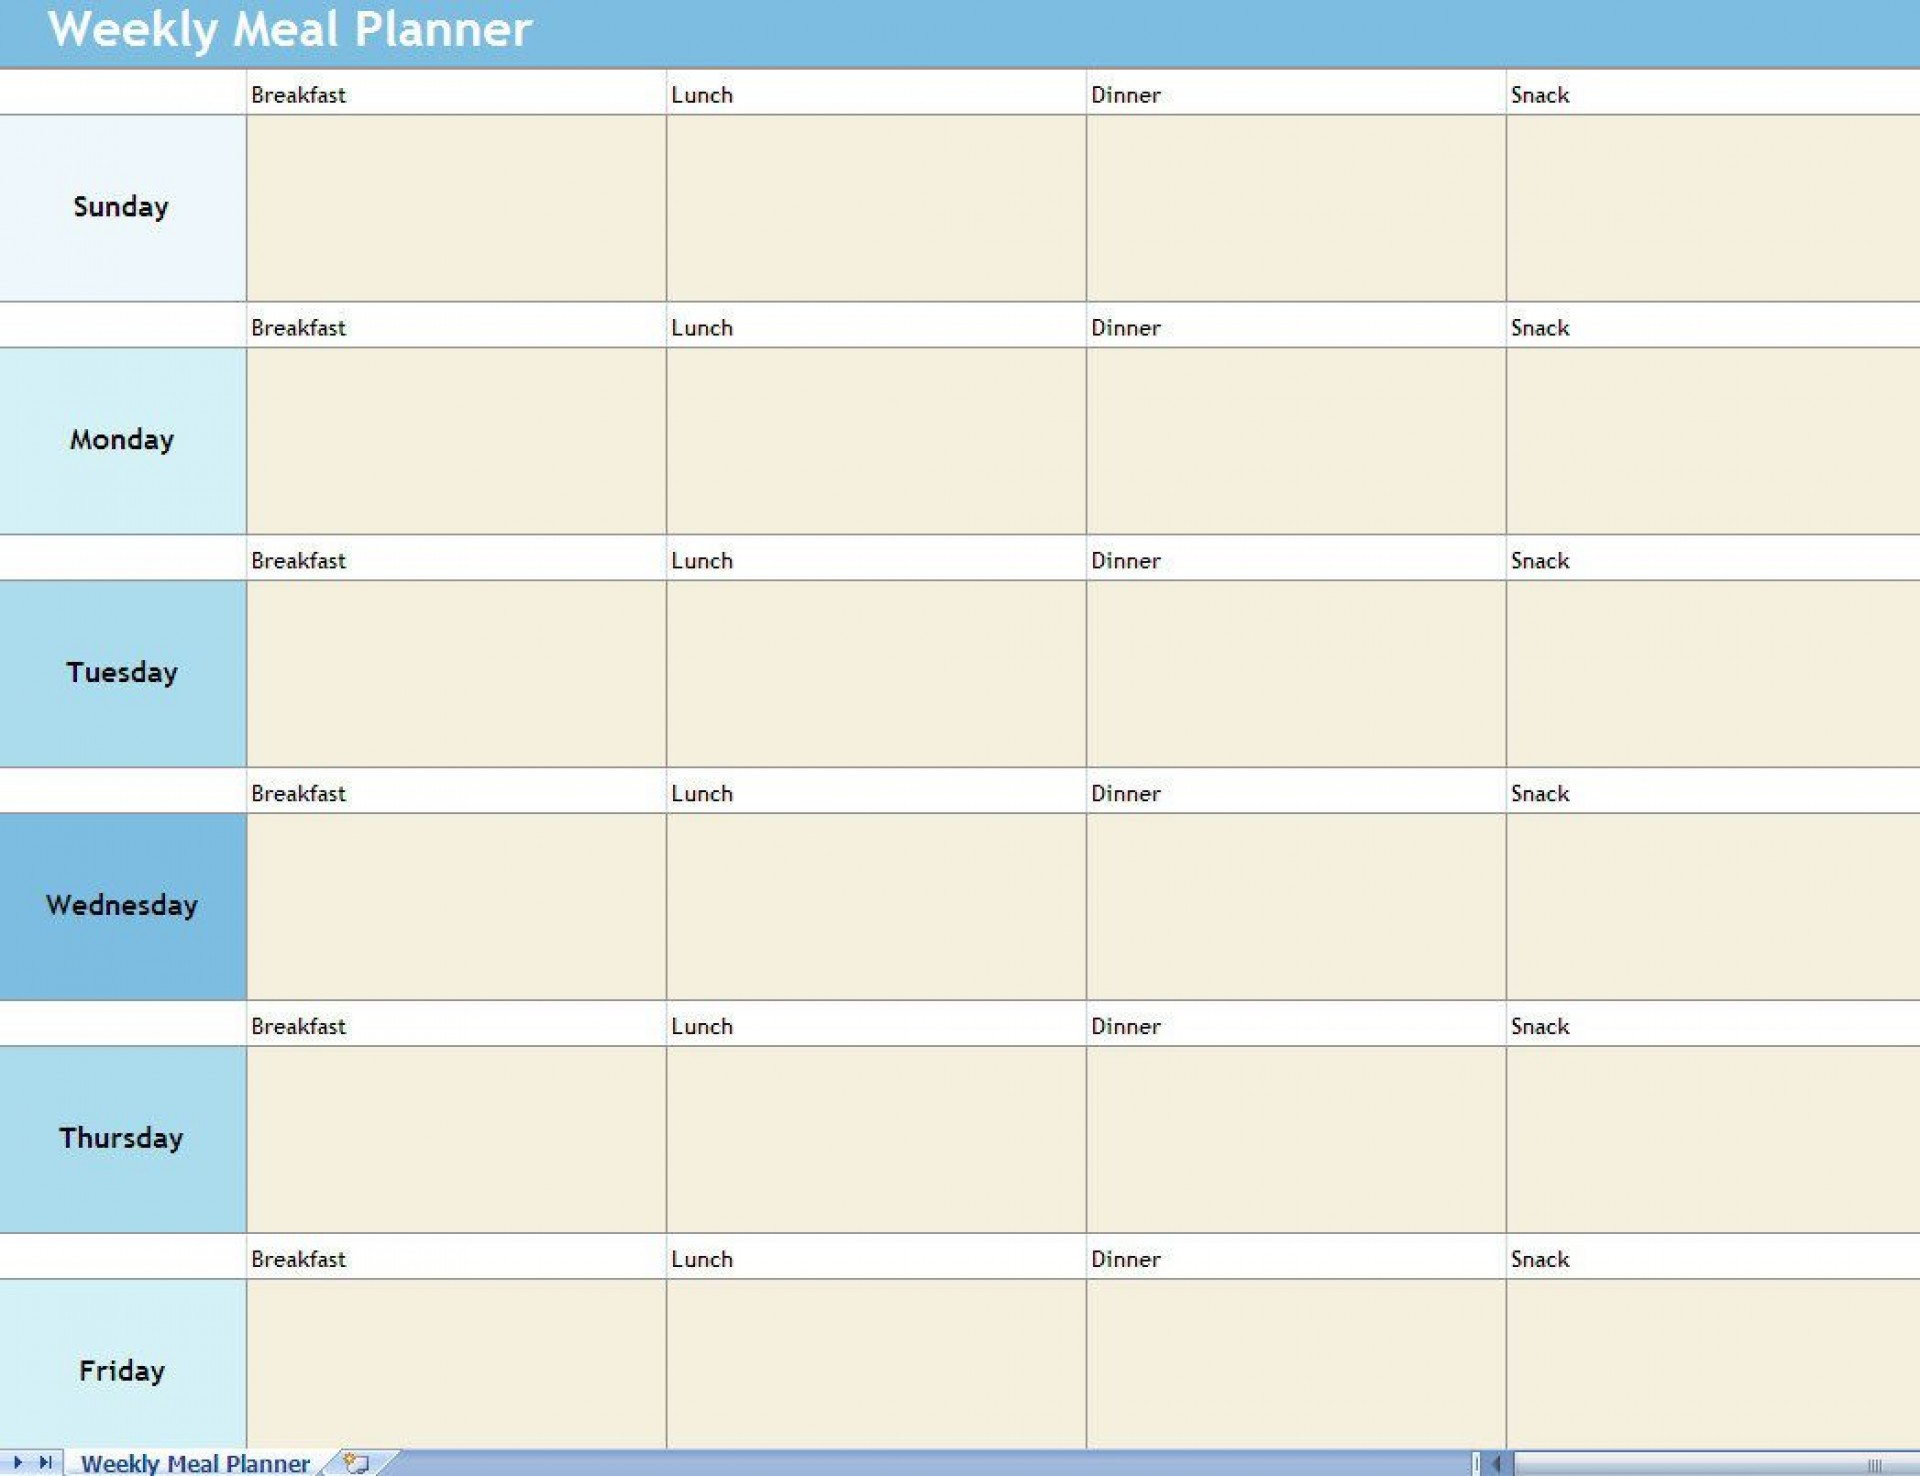 000 Awesome Free Meal Planner Template Word Image  Editable Weekly Monthly1920